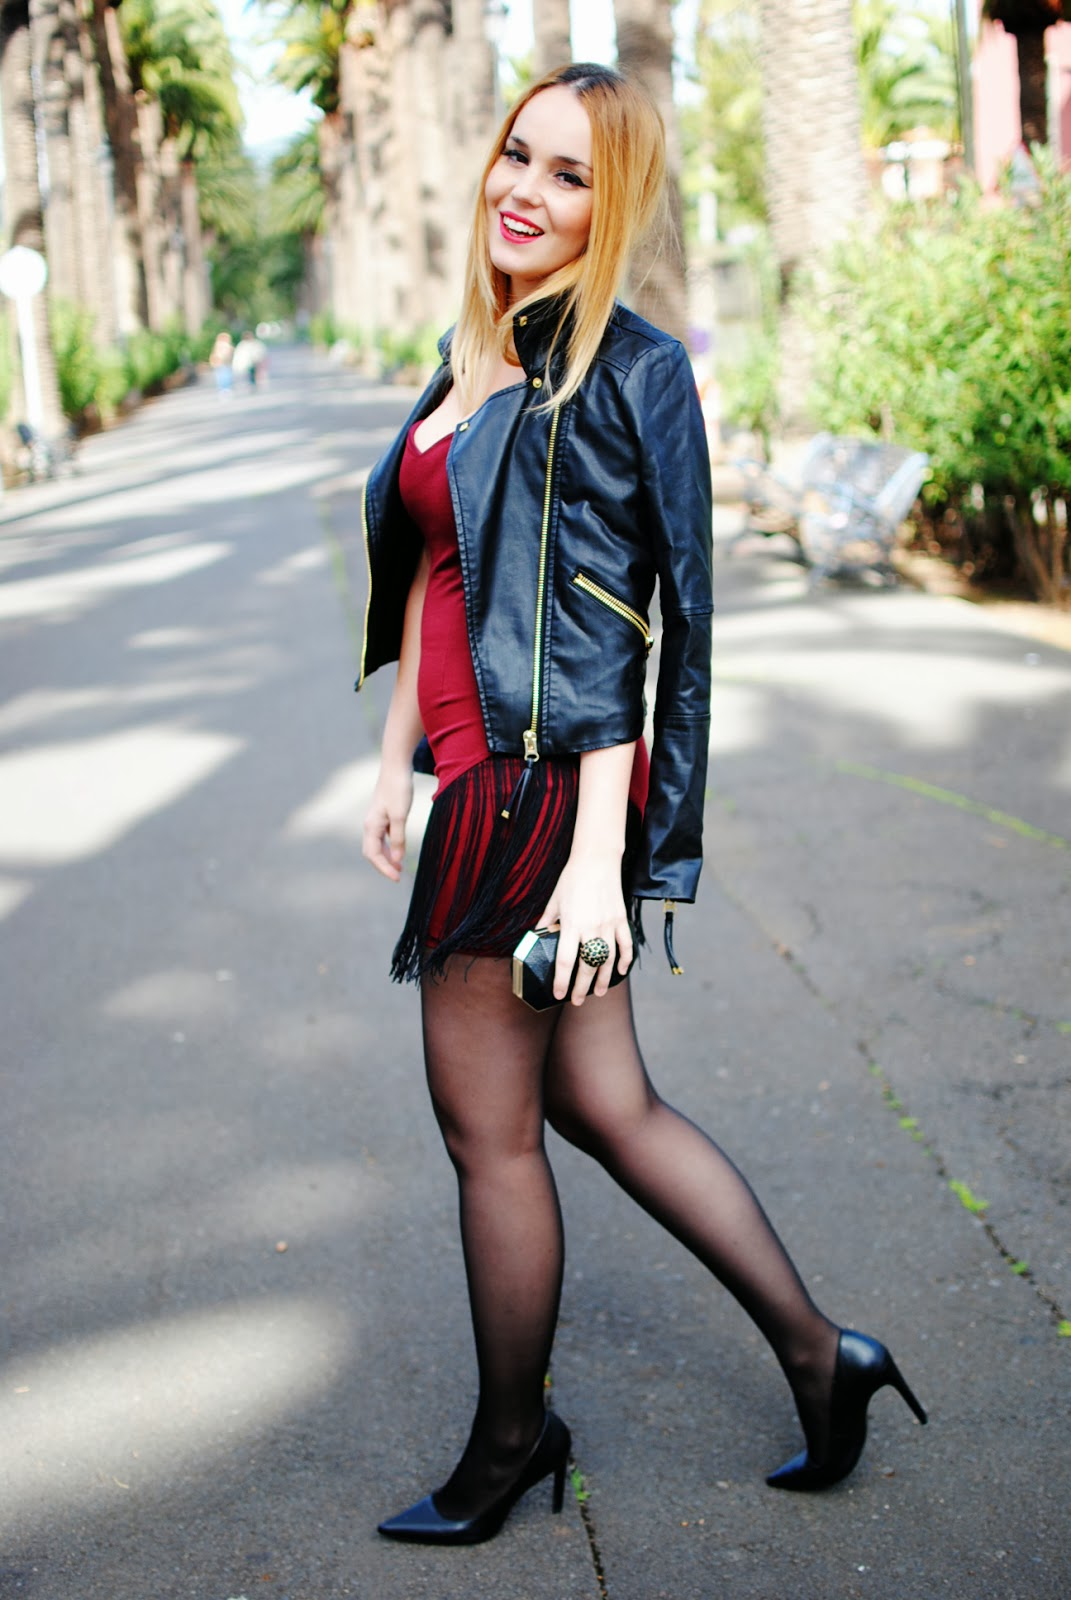 nery hdez, dress, fringes dress, leather jackets, blonde, san valentine , valentine's day look